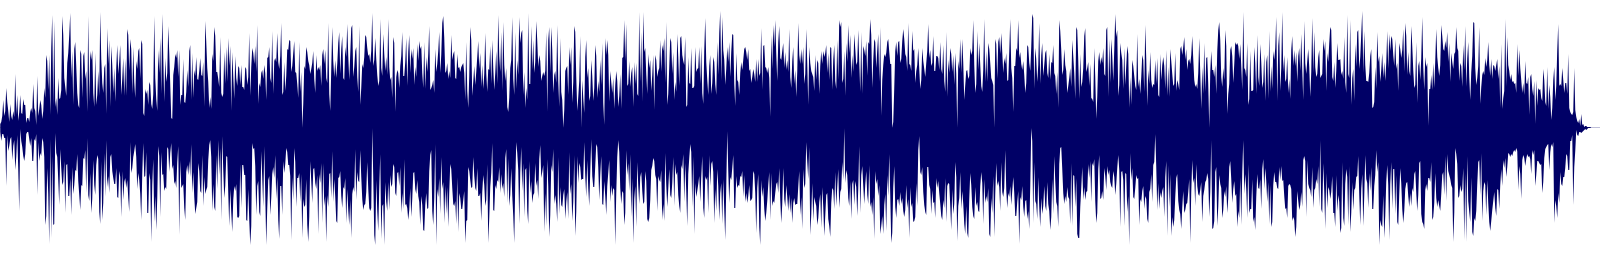 waveform of track #144050